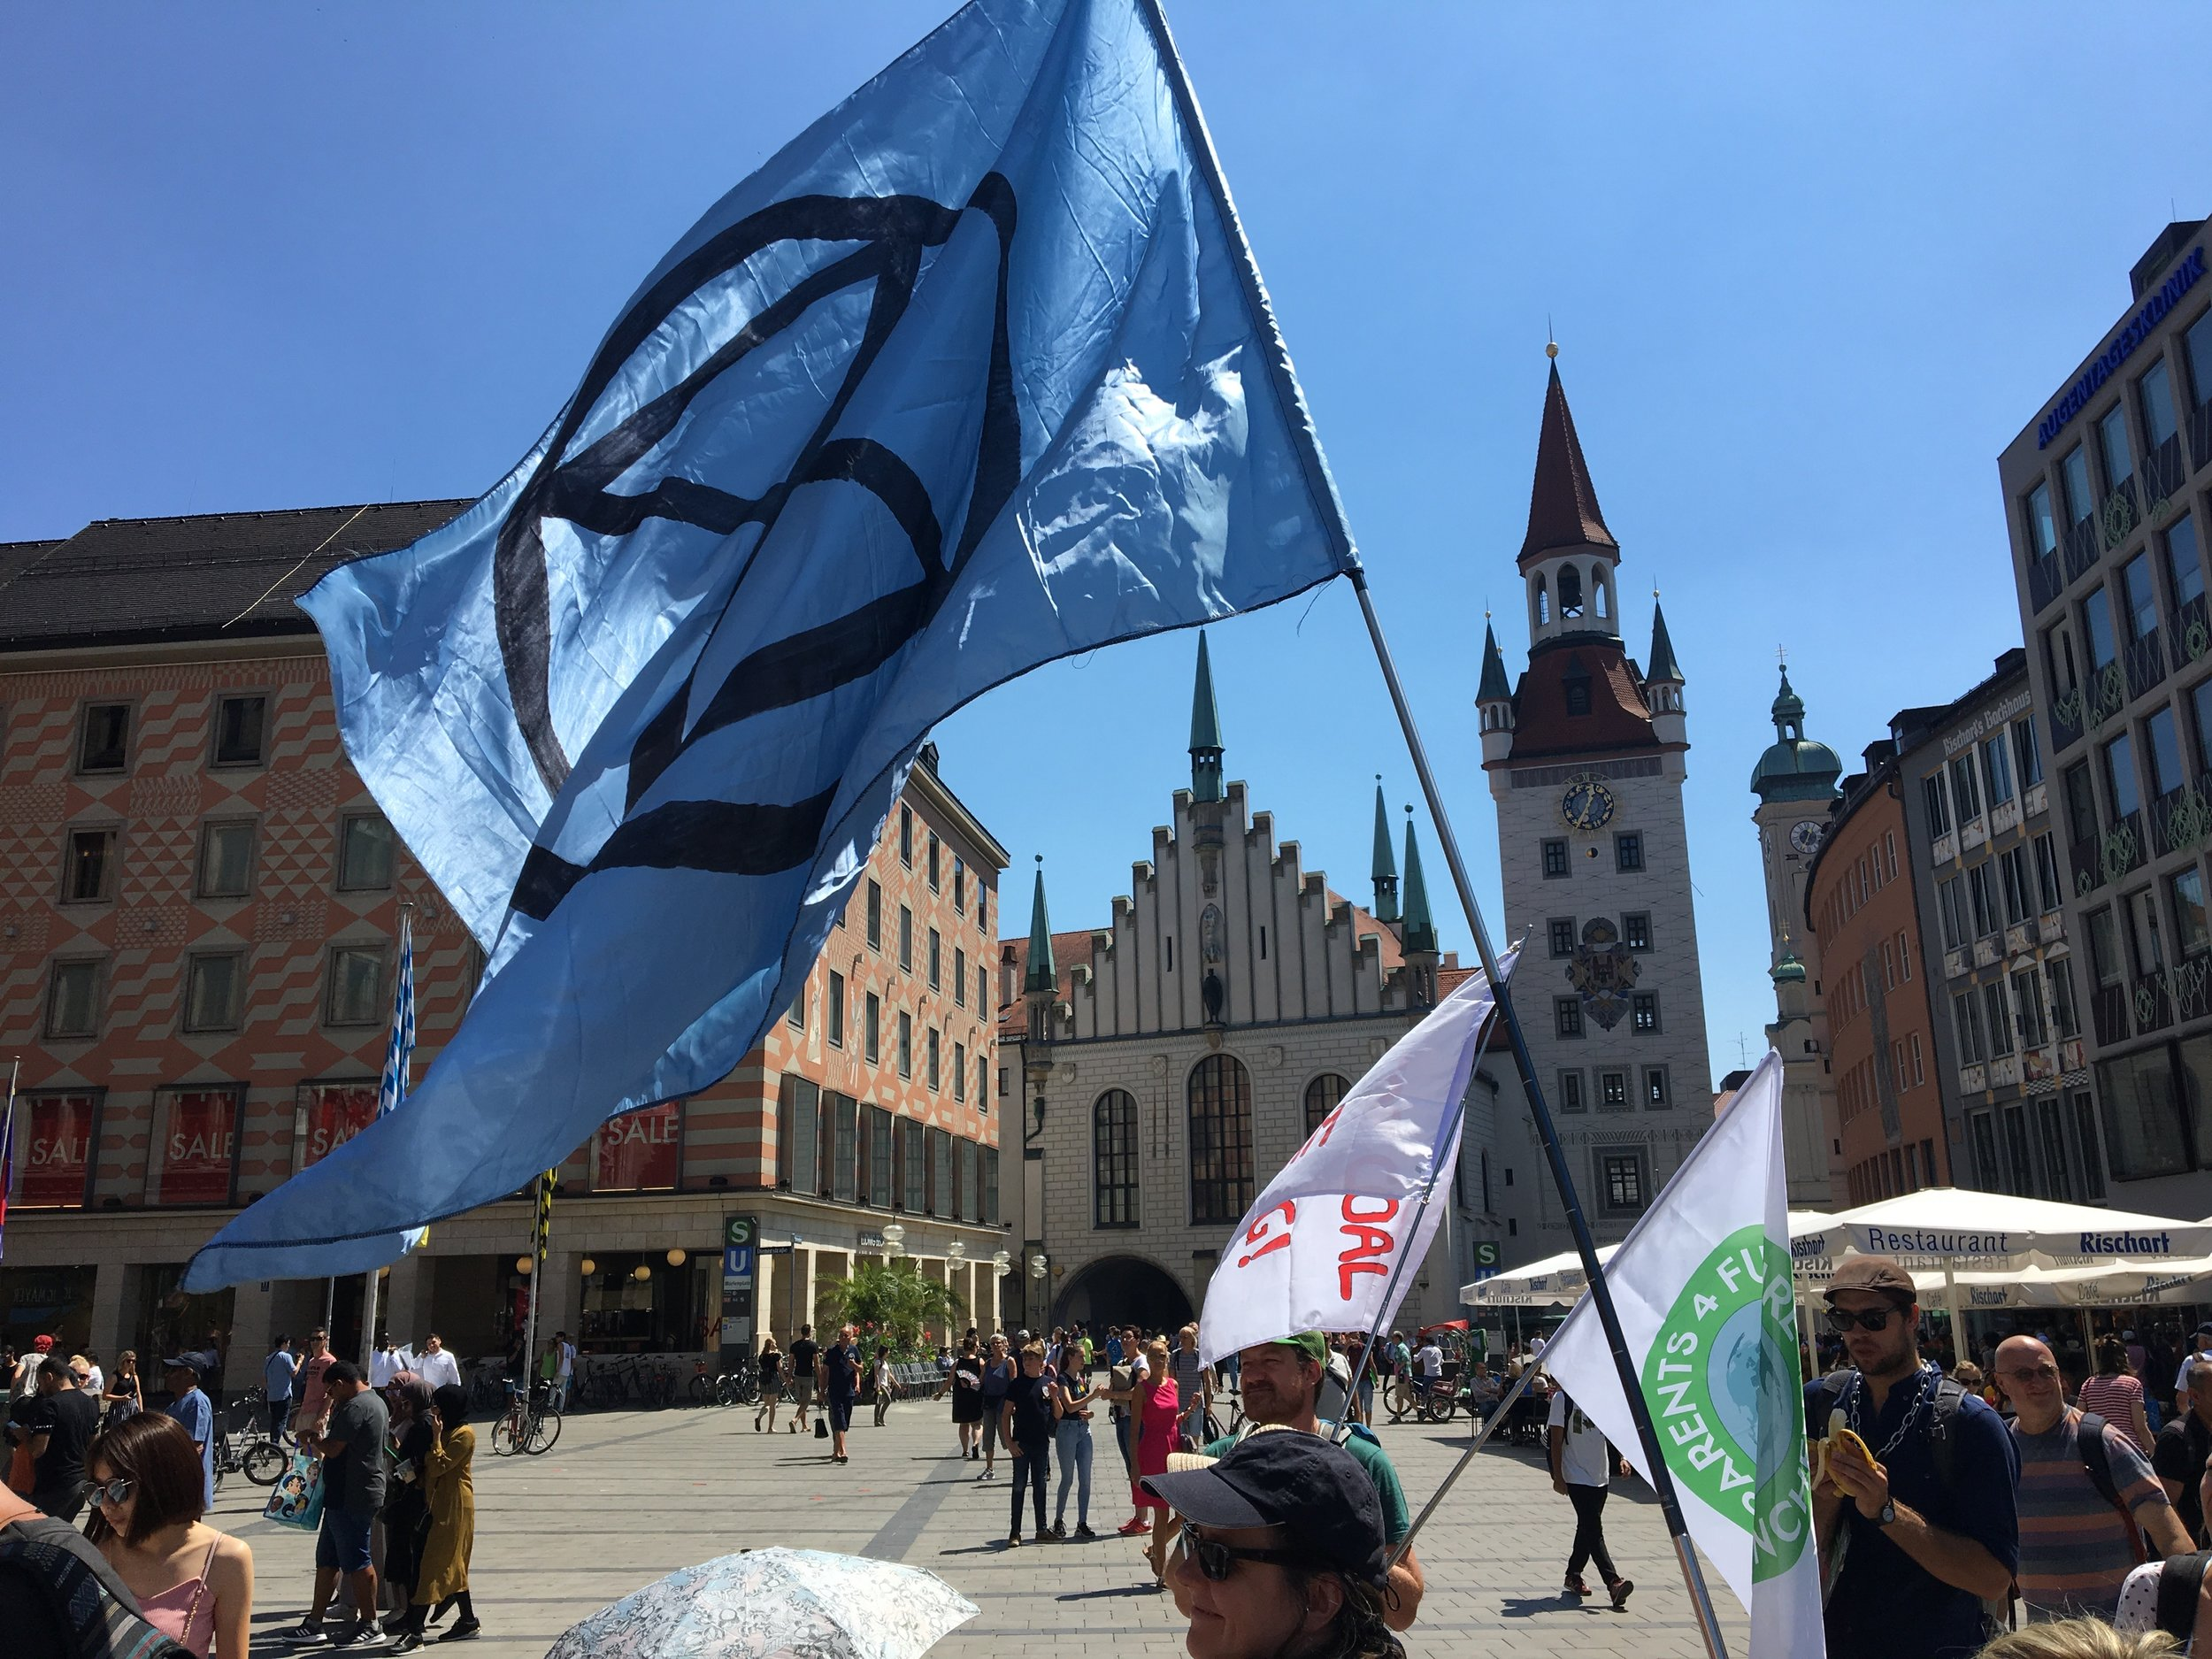 The flag of Munich rebellion, Marienplatz (image: © Paul Wheatley)